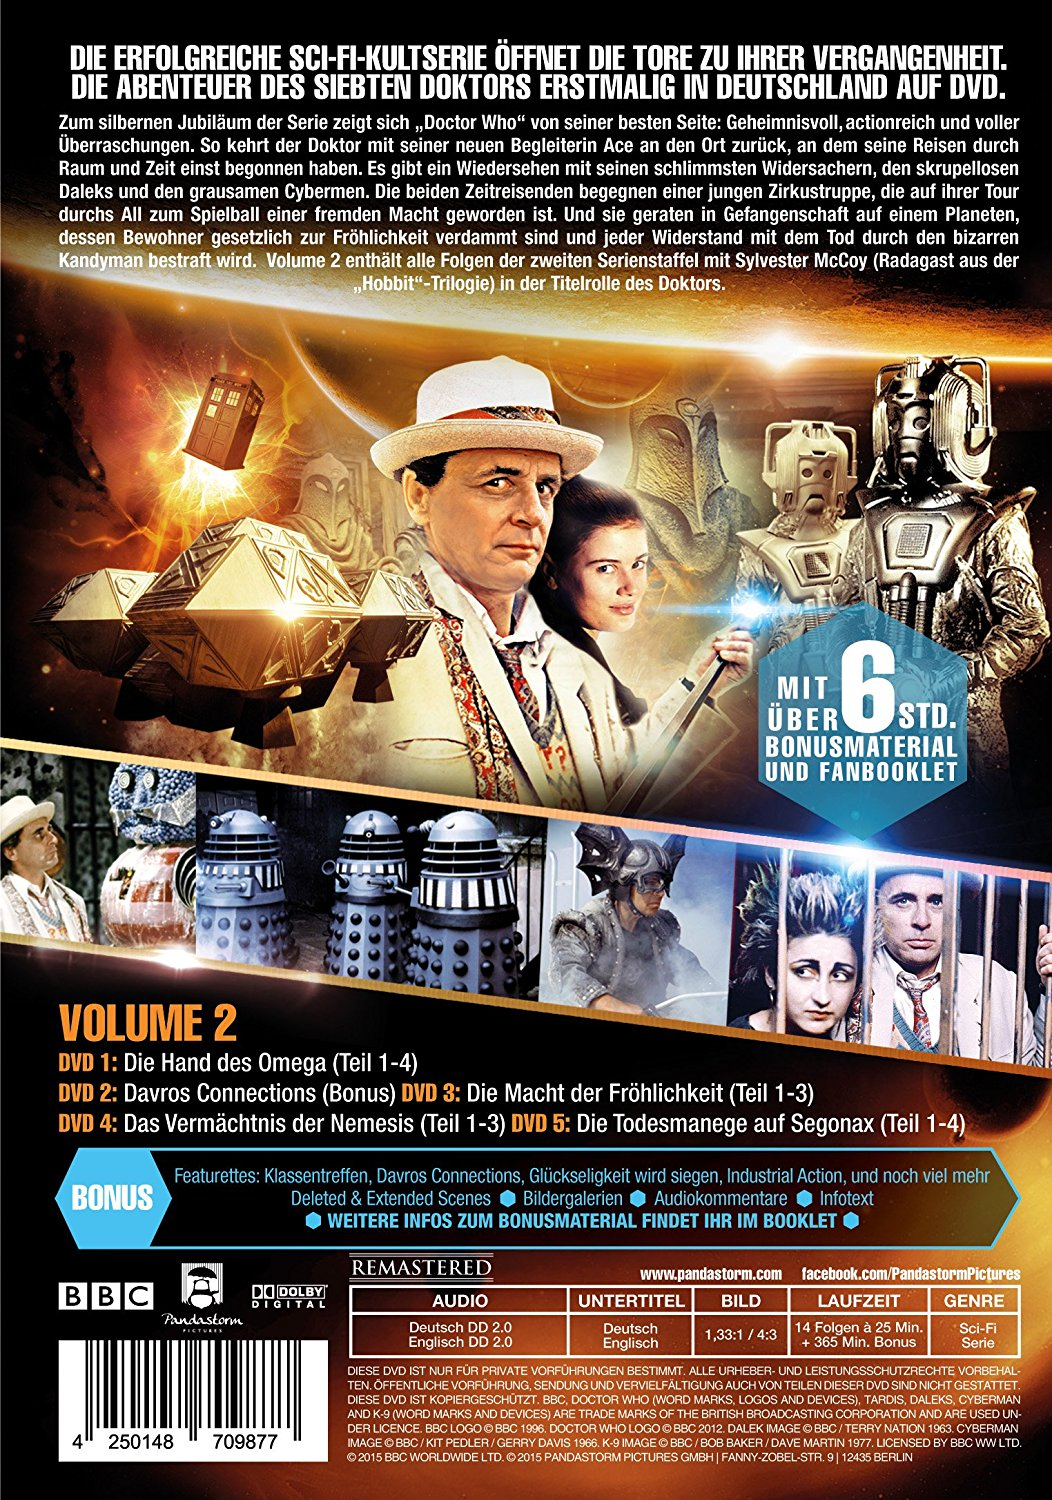 Doctor Who Siebter Doktor - Volume 2 - DVD